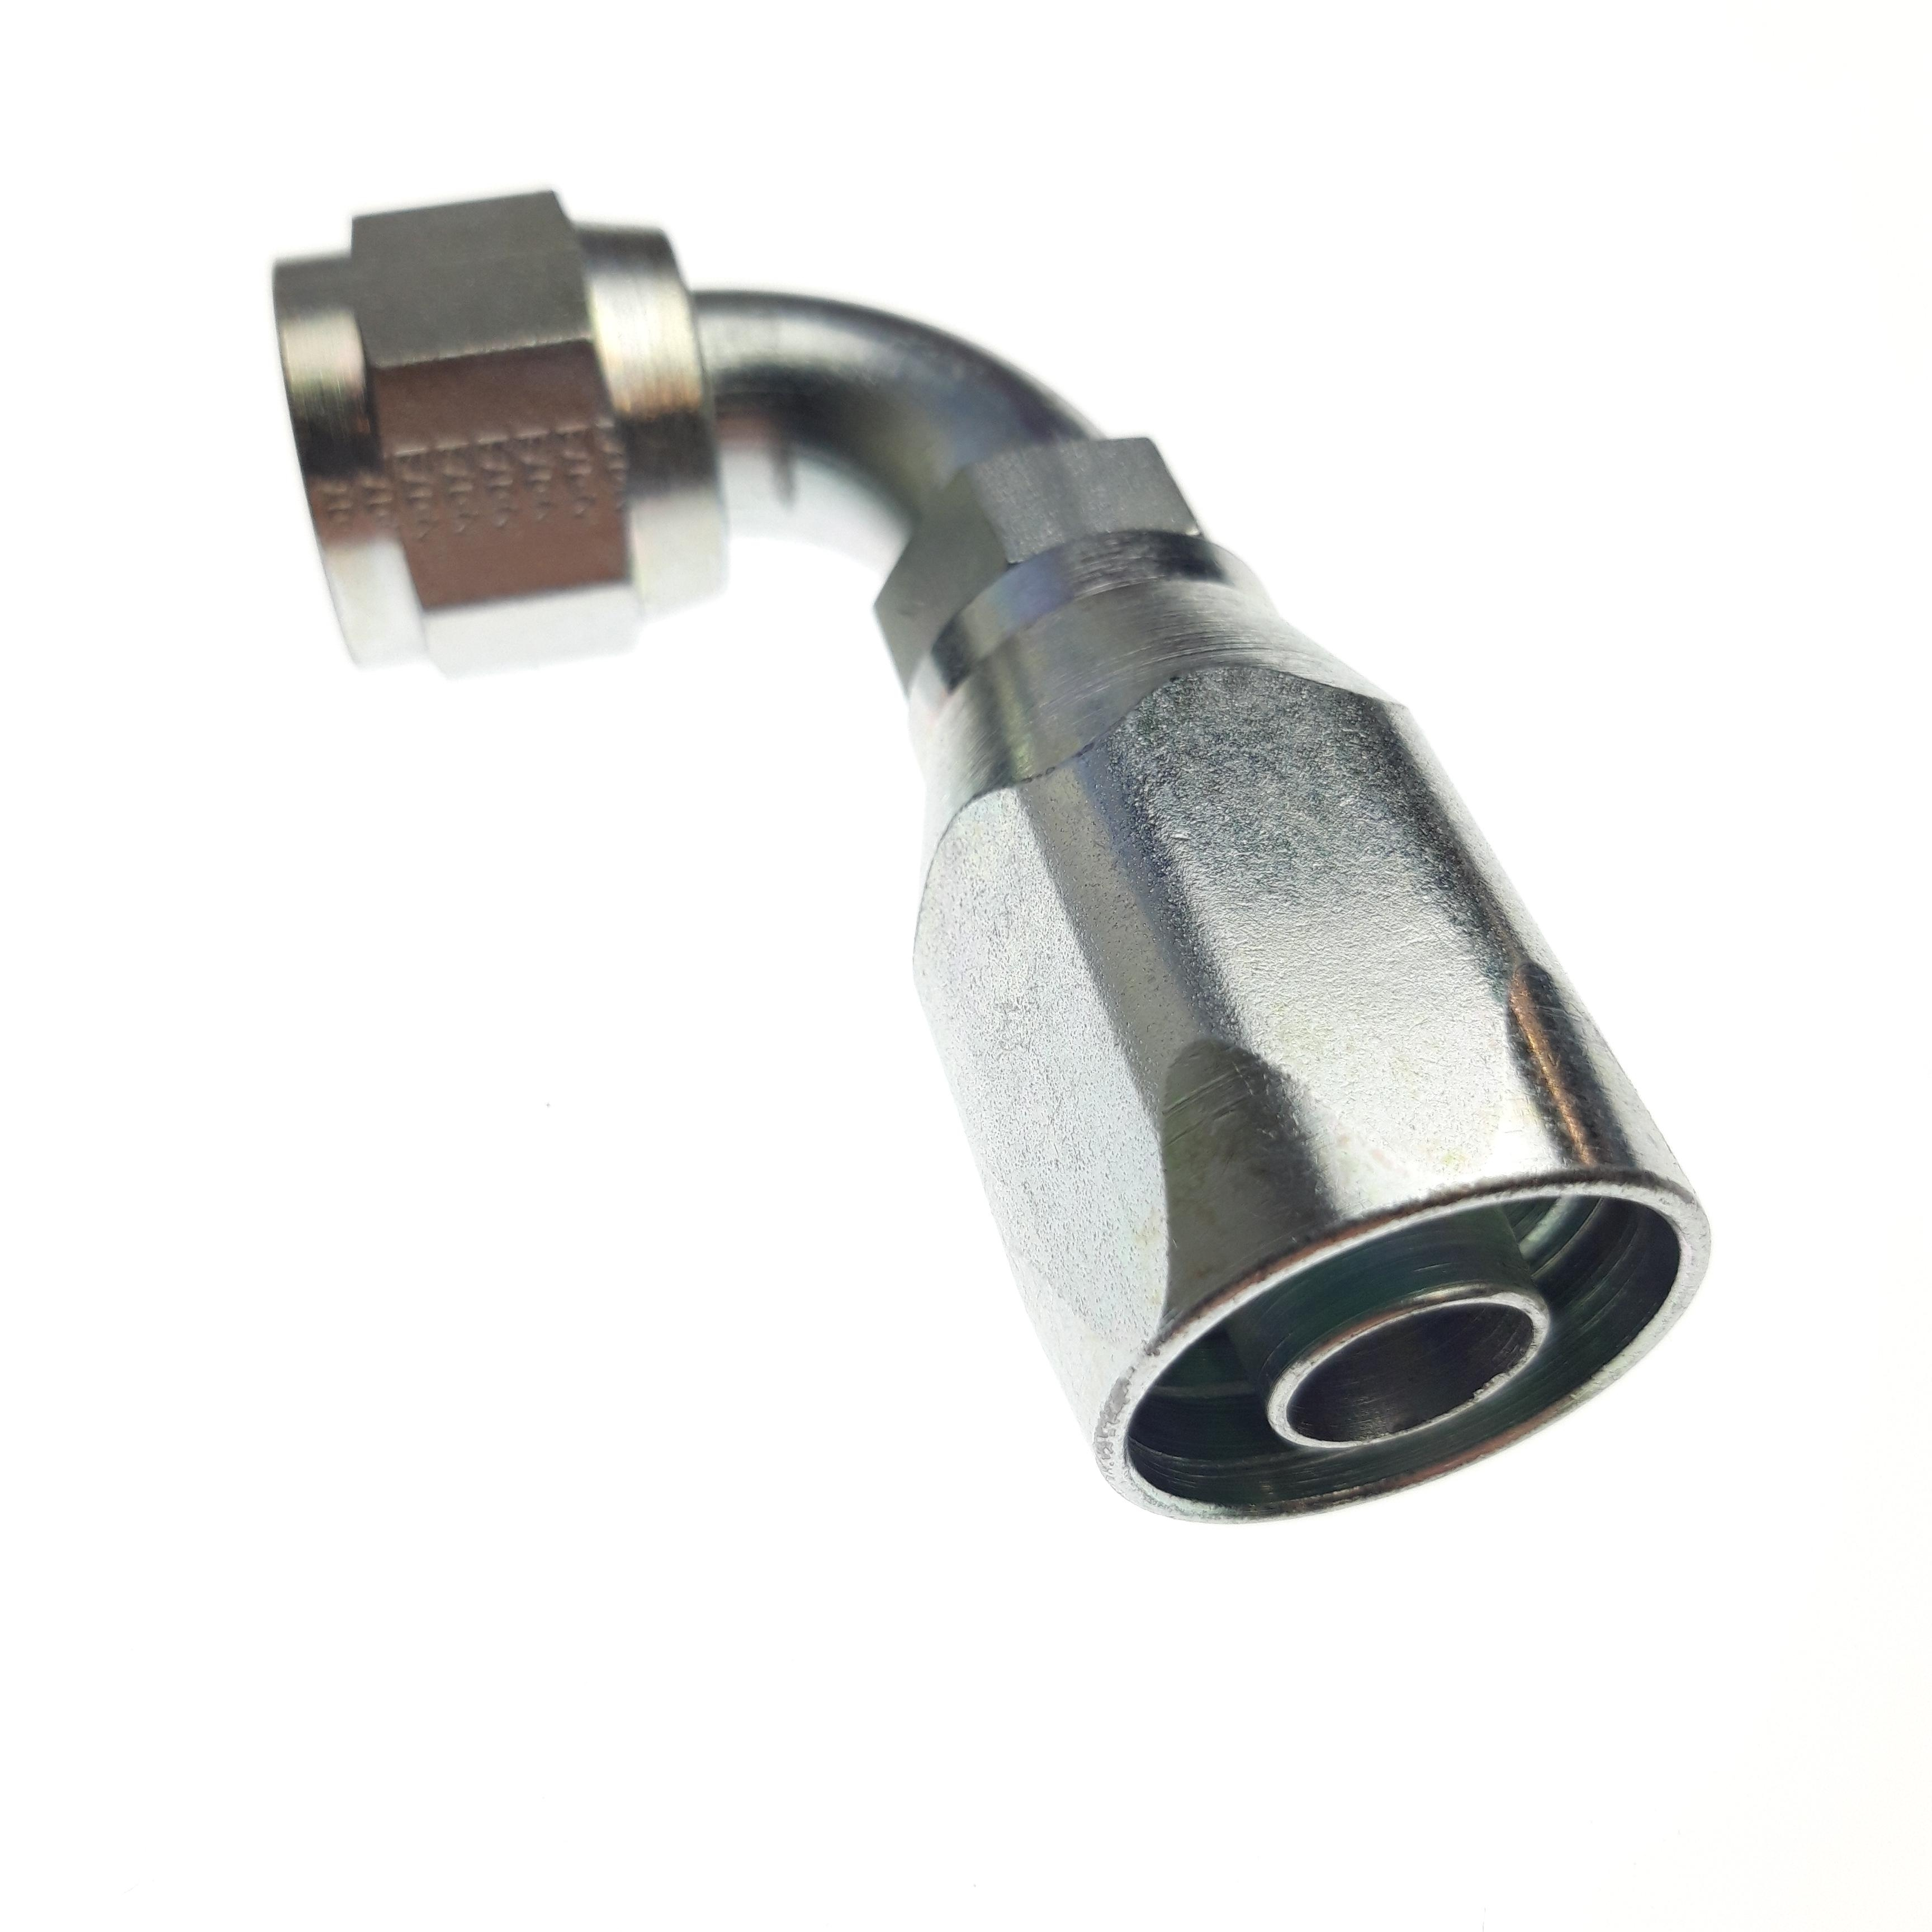 Fittings, Pipe and Hose: (T) Reusable Hose Fitting (-10 FJIC Swivel, 90°)